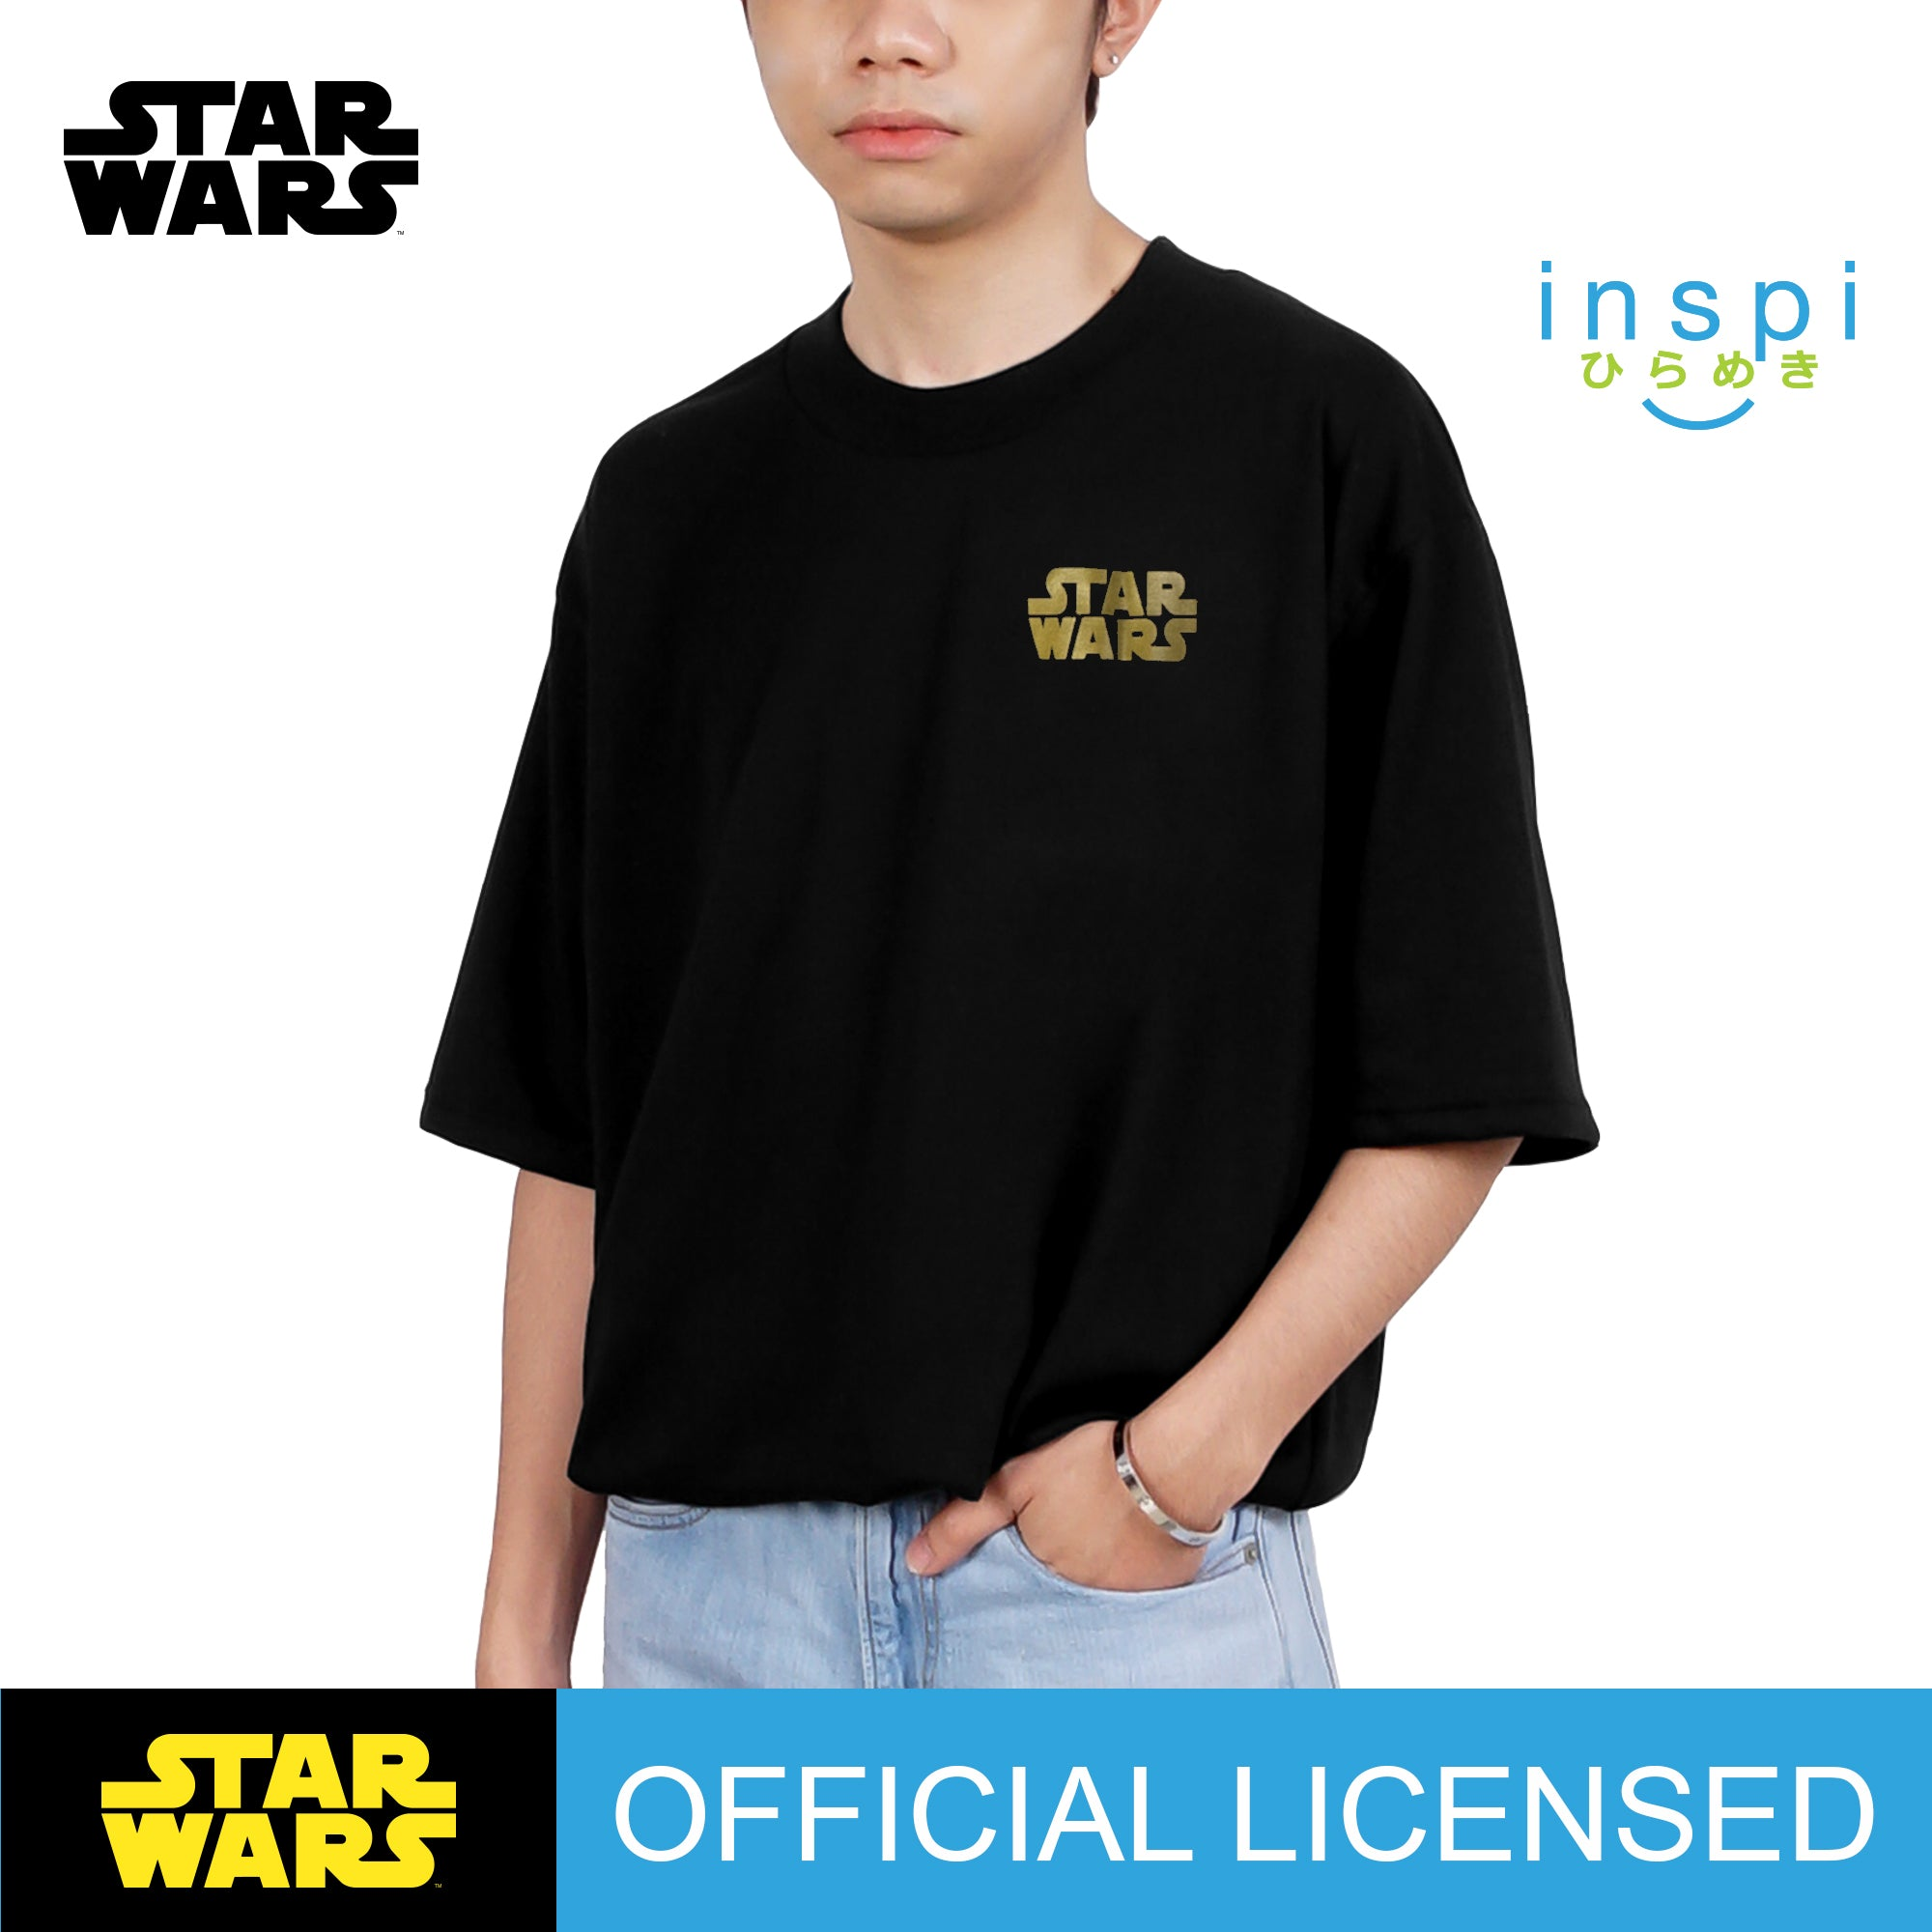 Star Wars Gold Graphic Korean Oversized Tshirt in Black Inspi Tee